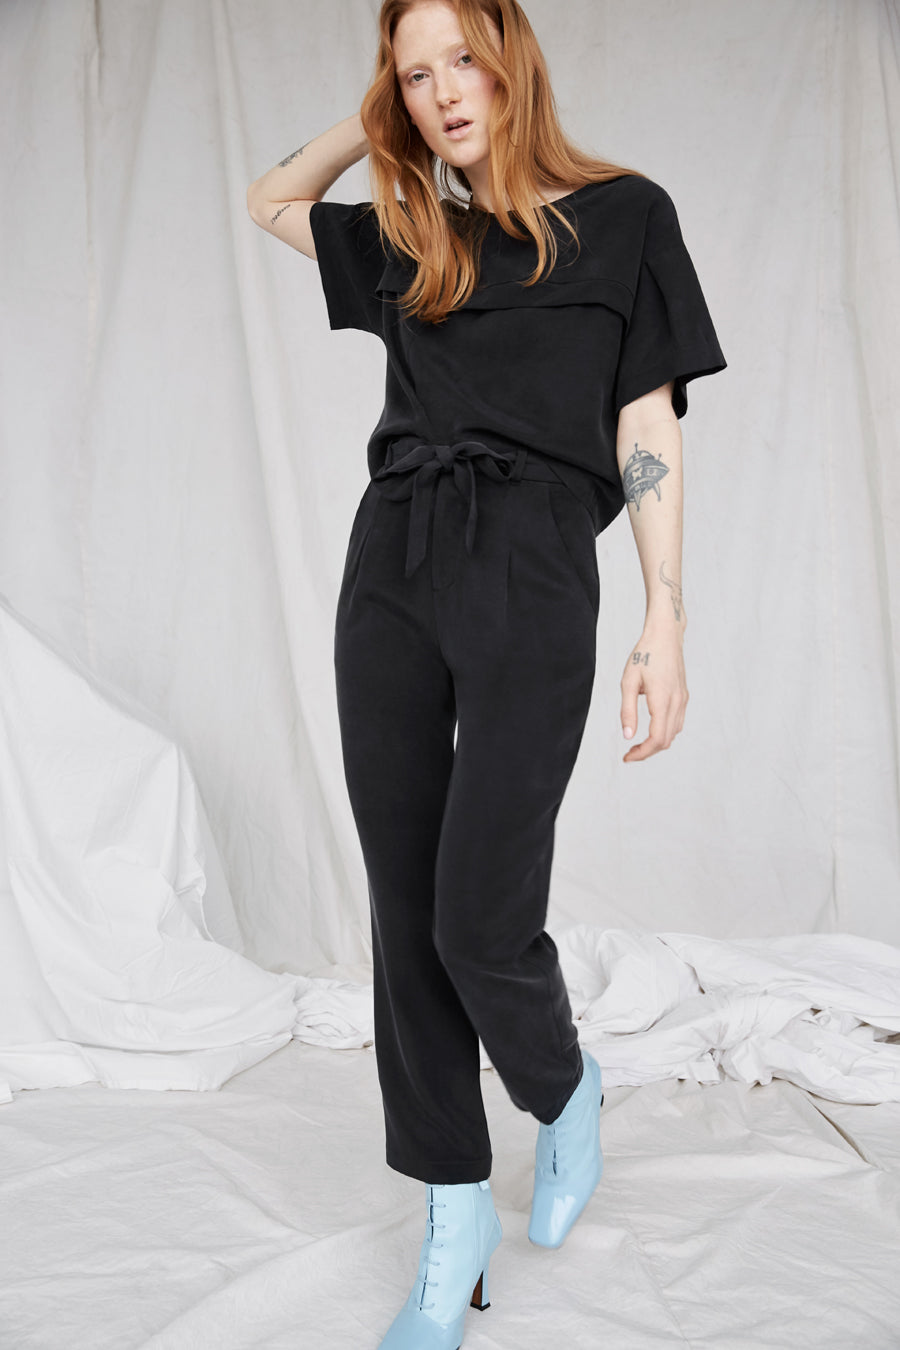 Eve Gravel Lions Eco Pants in Black with a relaxed fit and self-tie belt